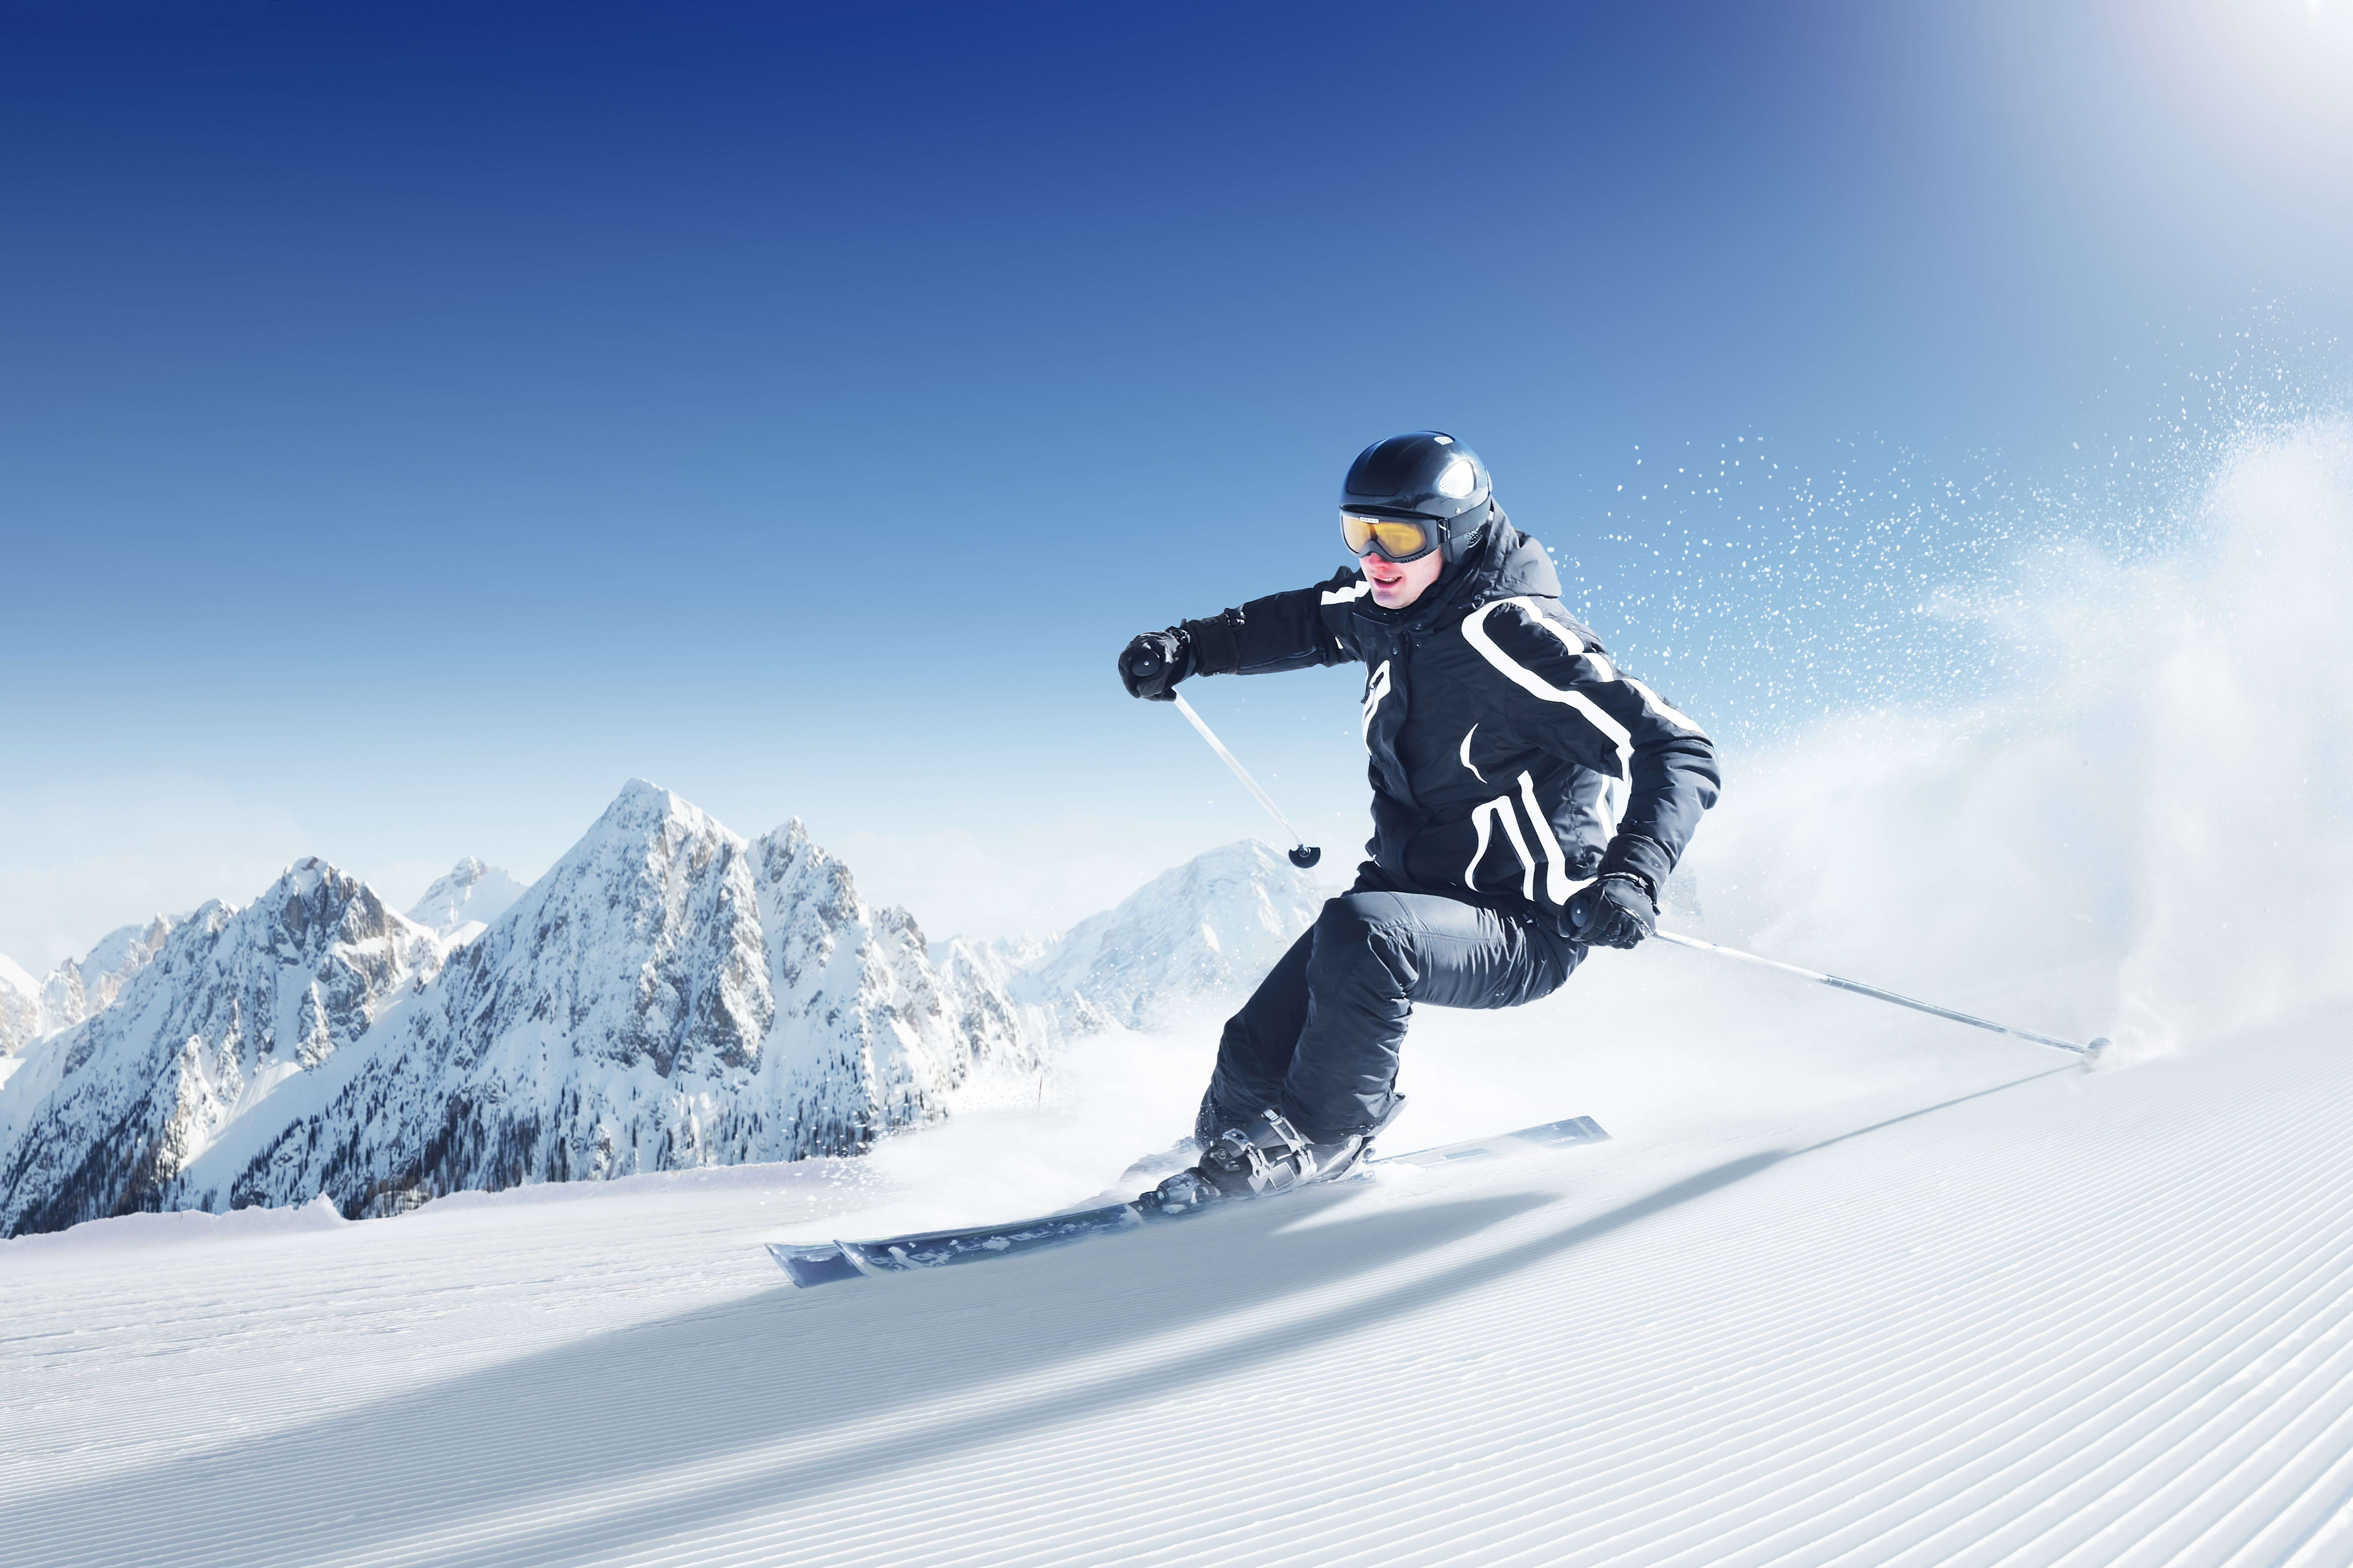 Mountains, snow, Skiing, wallpapers , Pc backgrounds, free photos